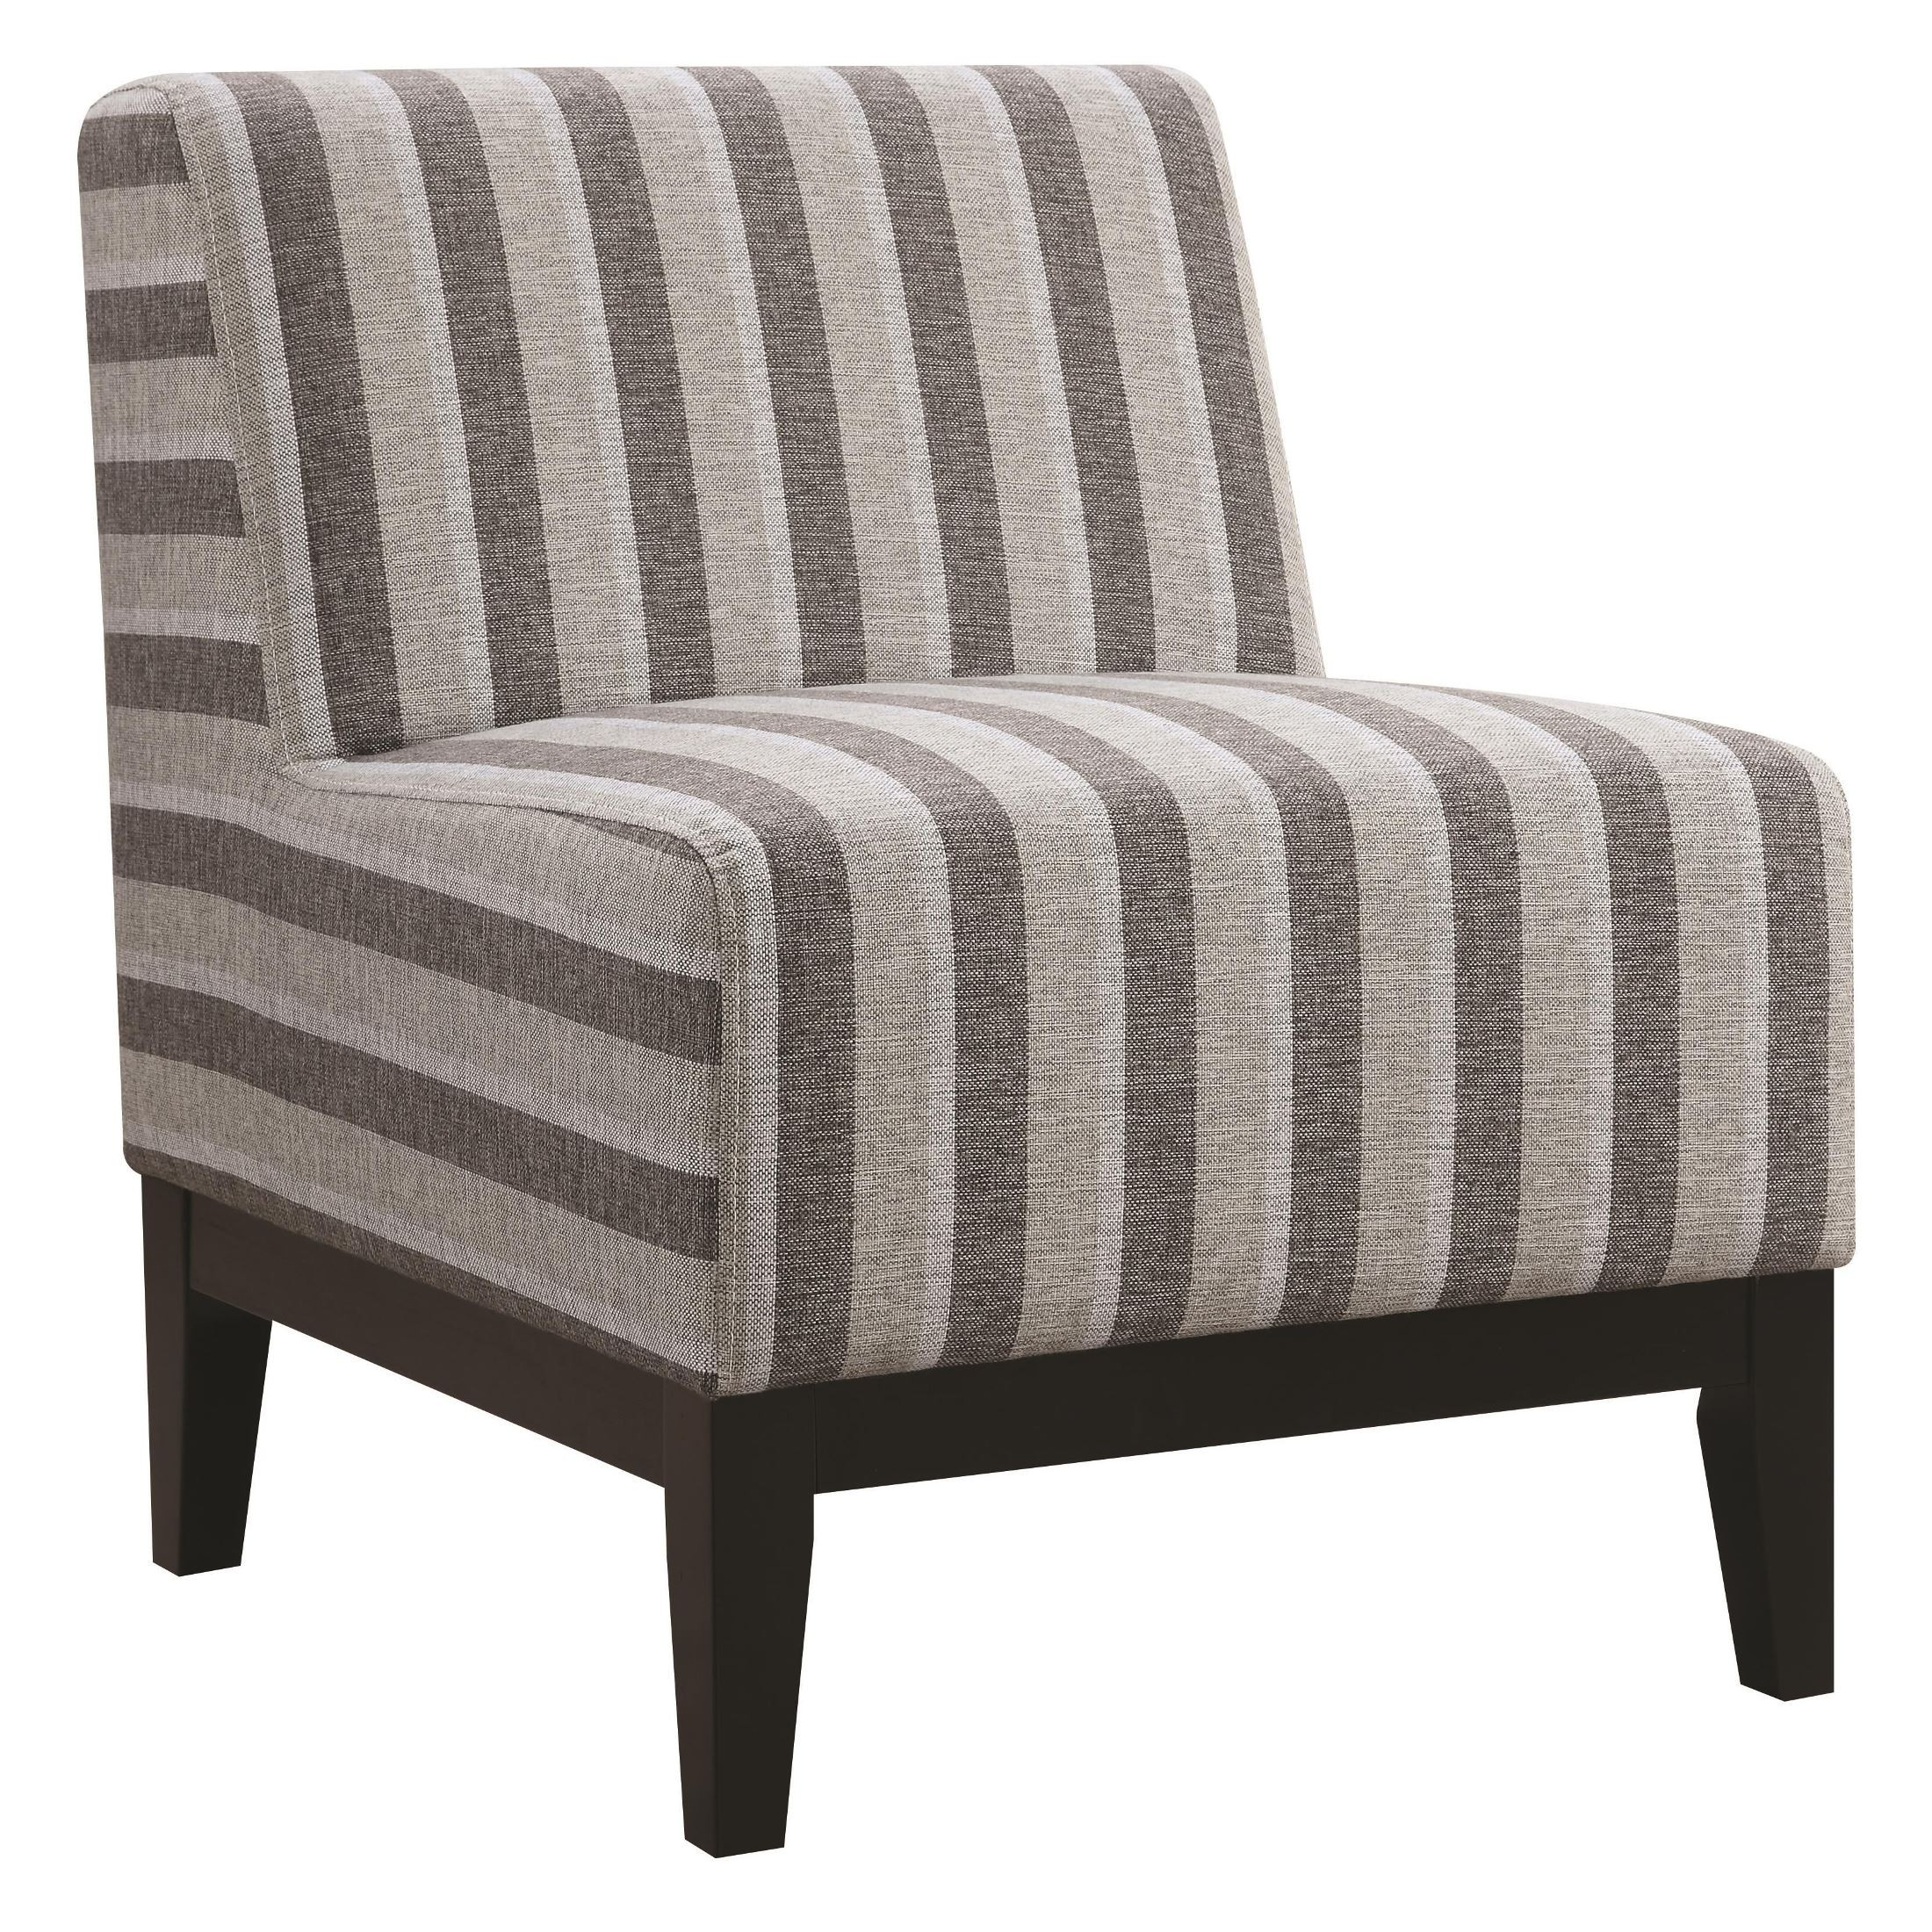 Thick Grey Striped Accent Chair From Coaster 902610